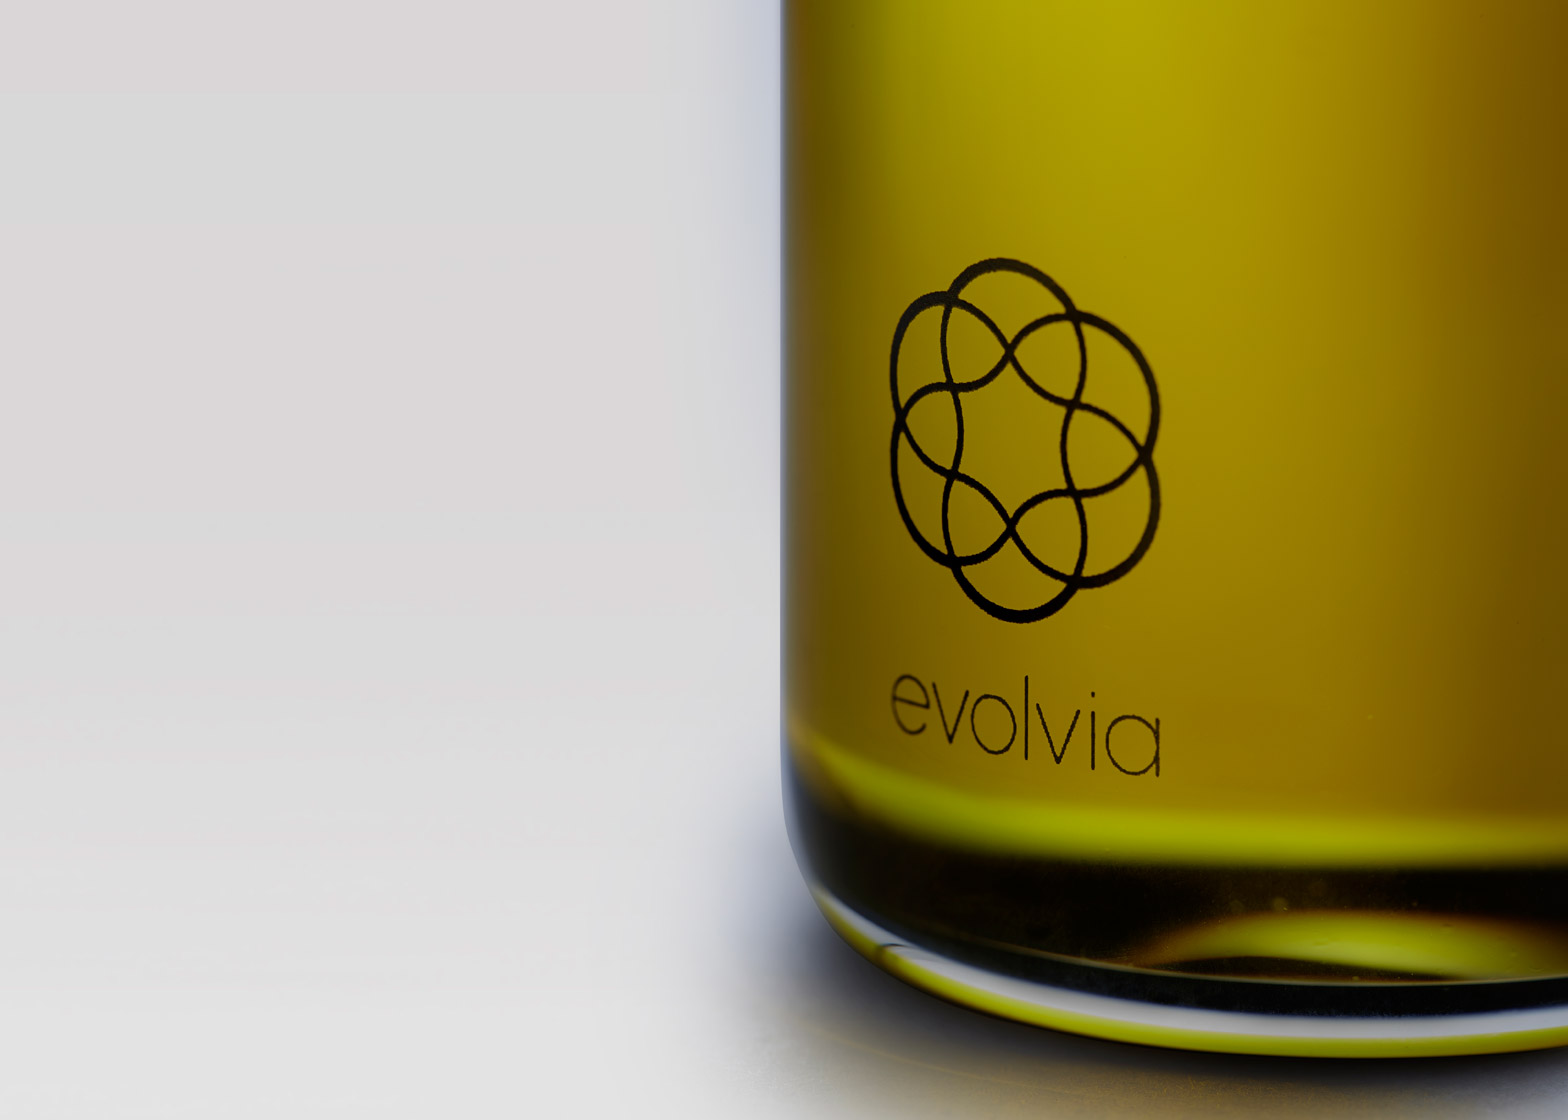 Evolvia by Evolve organic extra virgin olive oil bottle